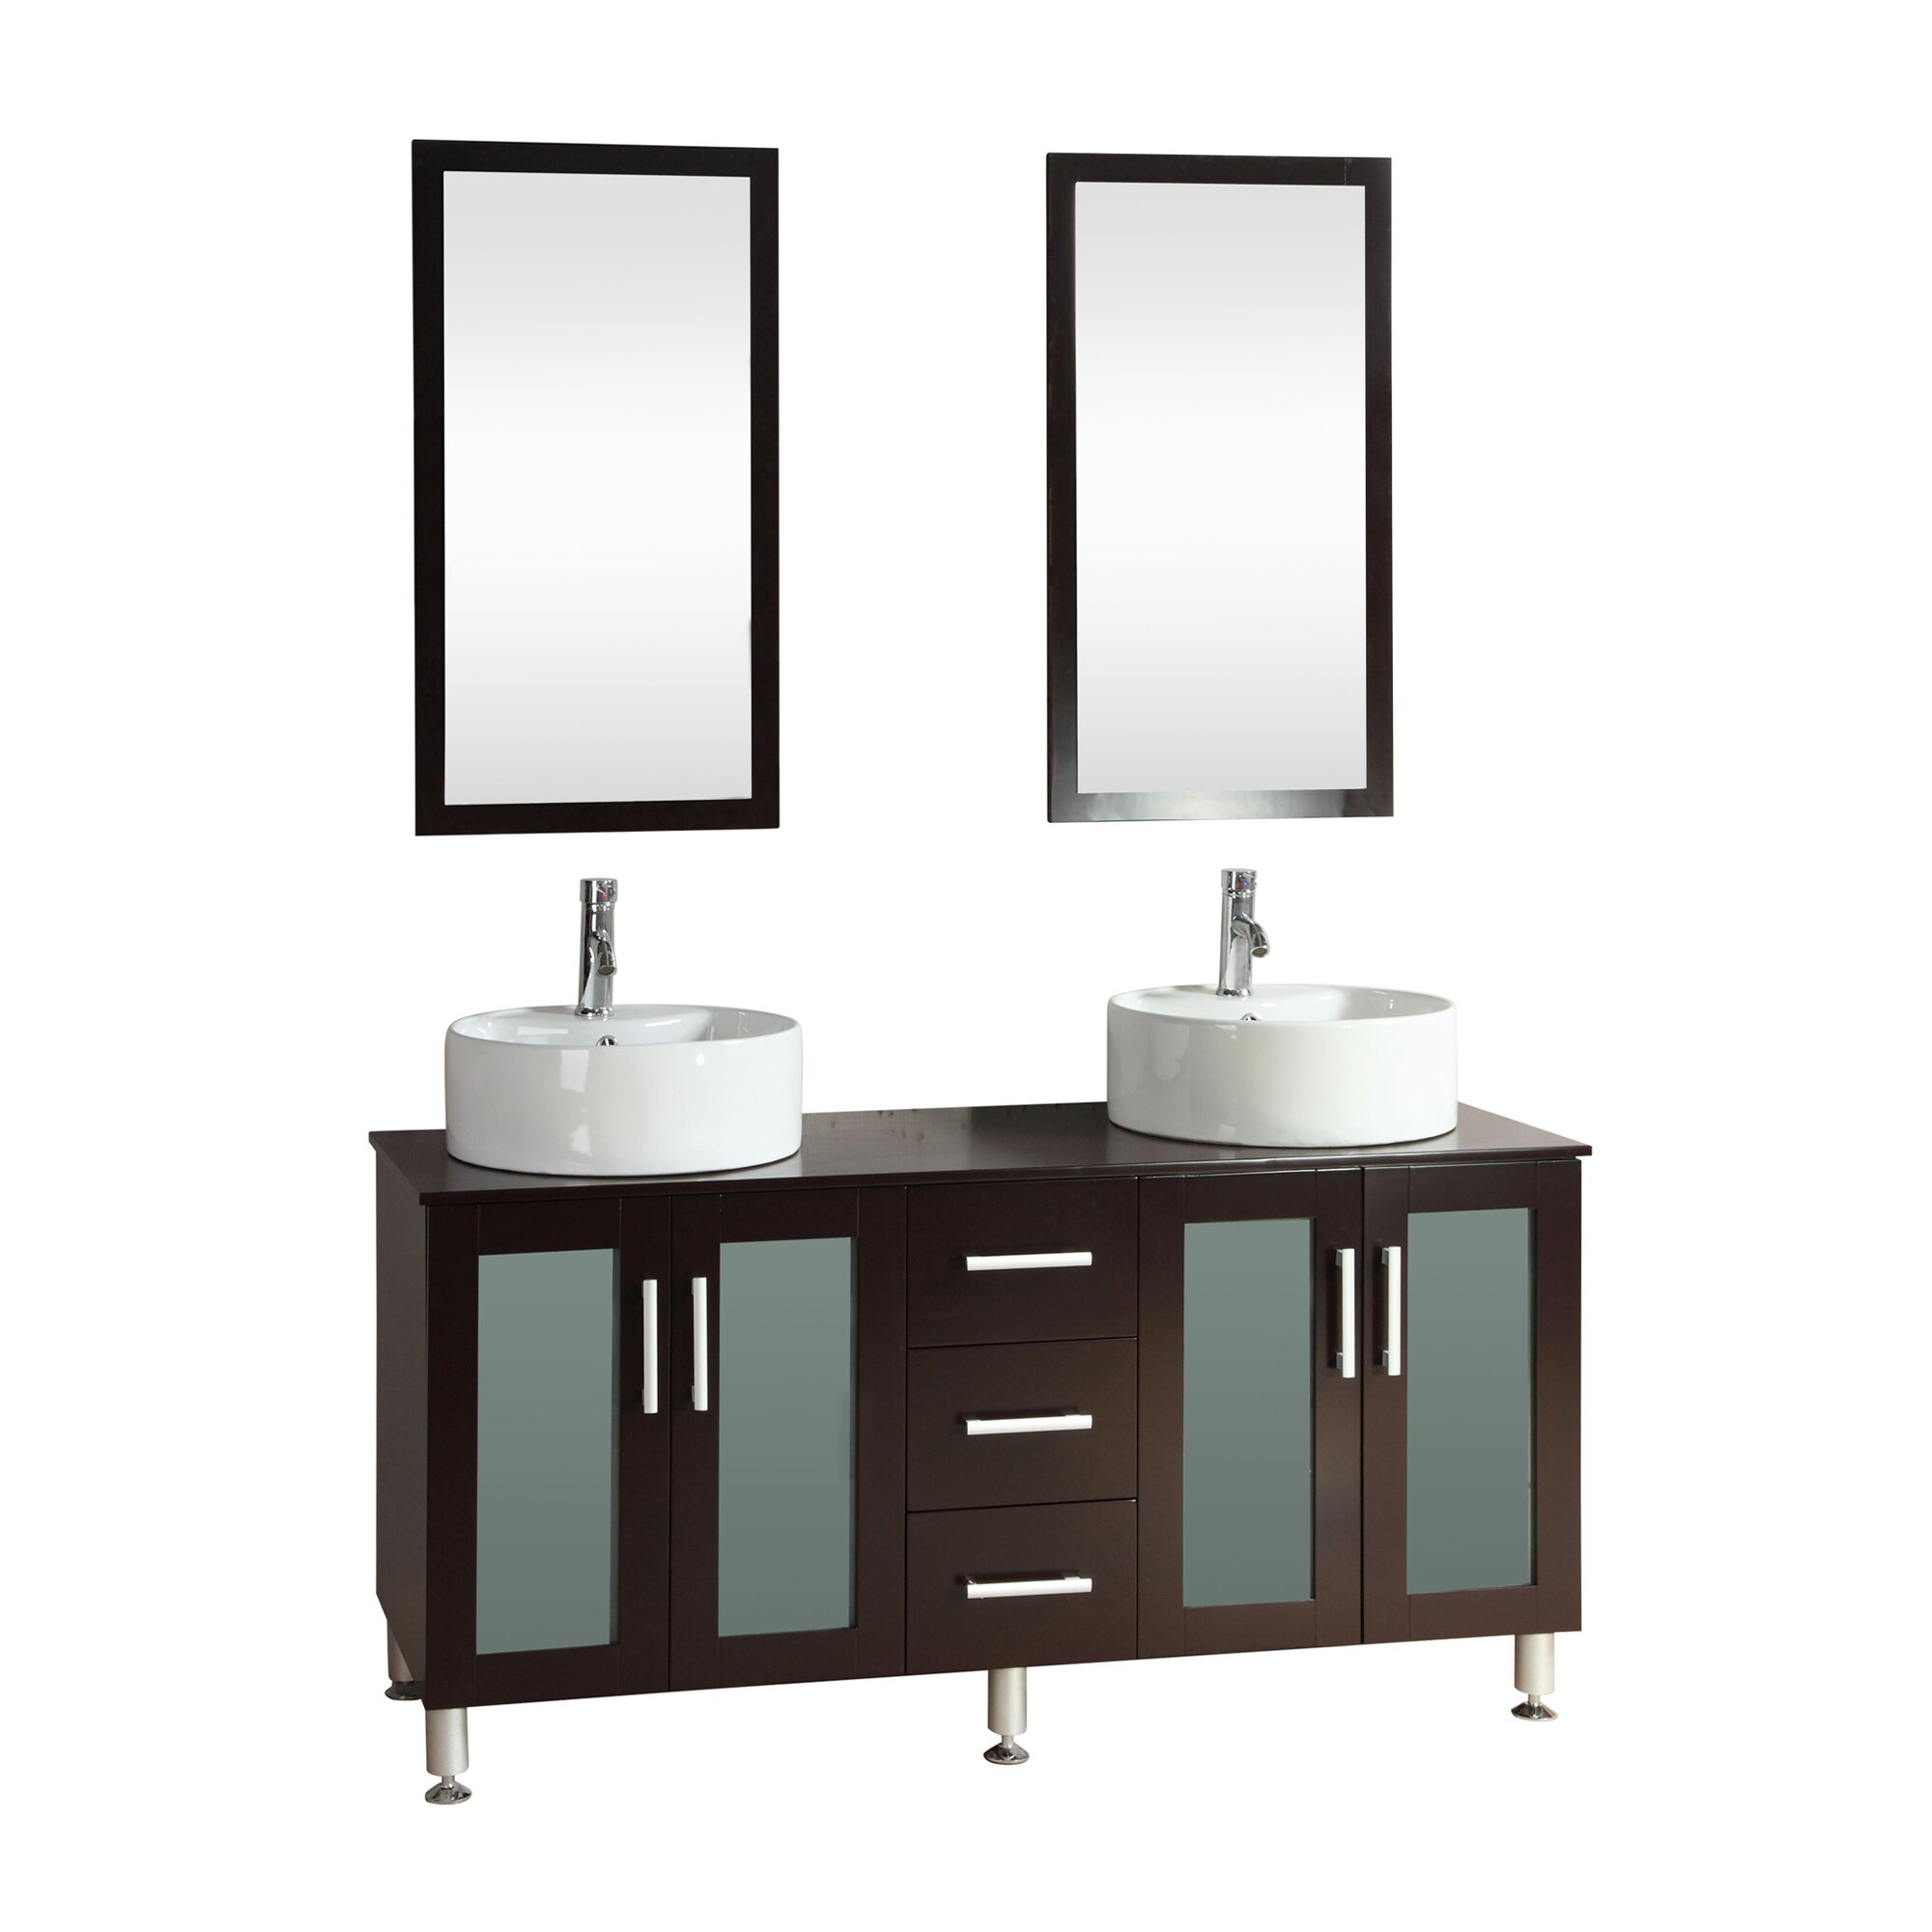 Double bathroom vanity - Kokols 60 Quot Double Bathroom Vanity Set With Mirror